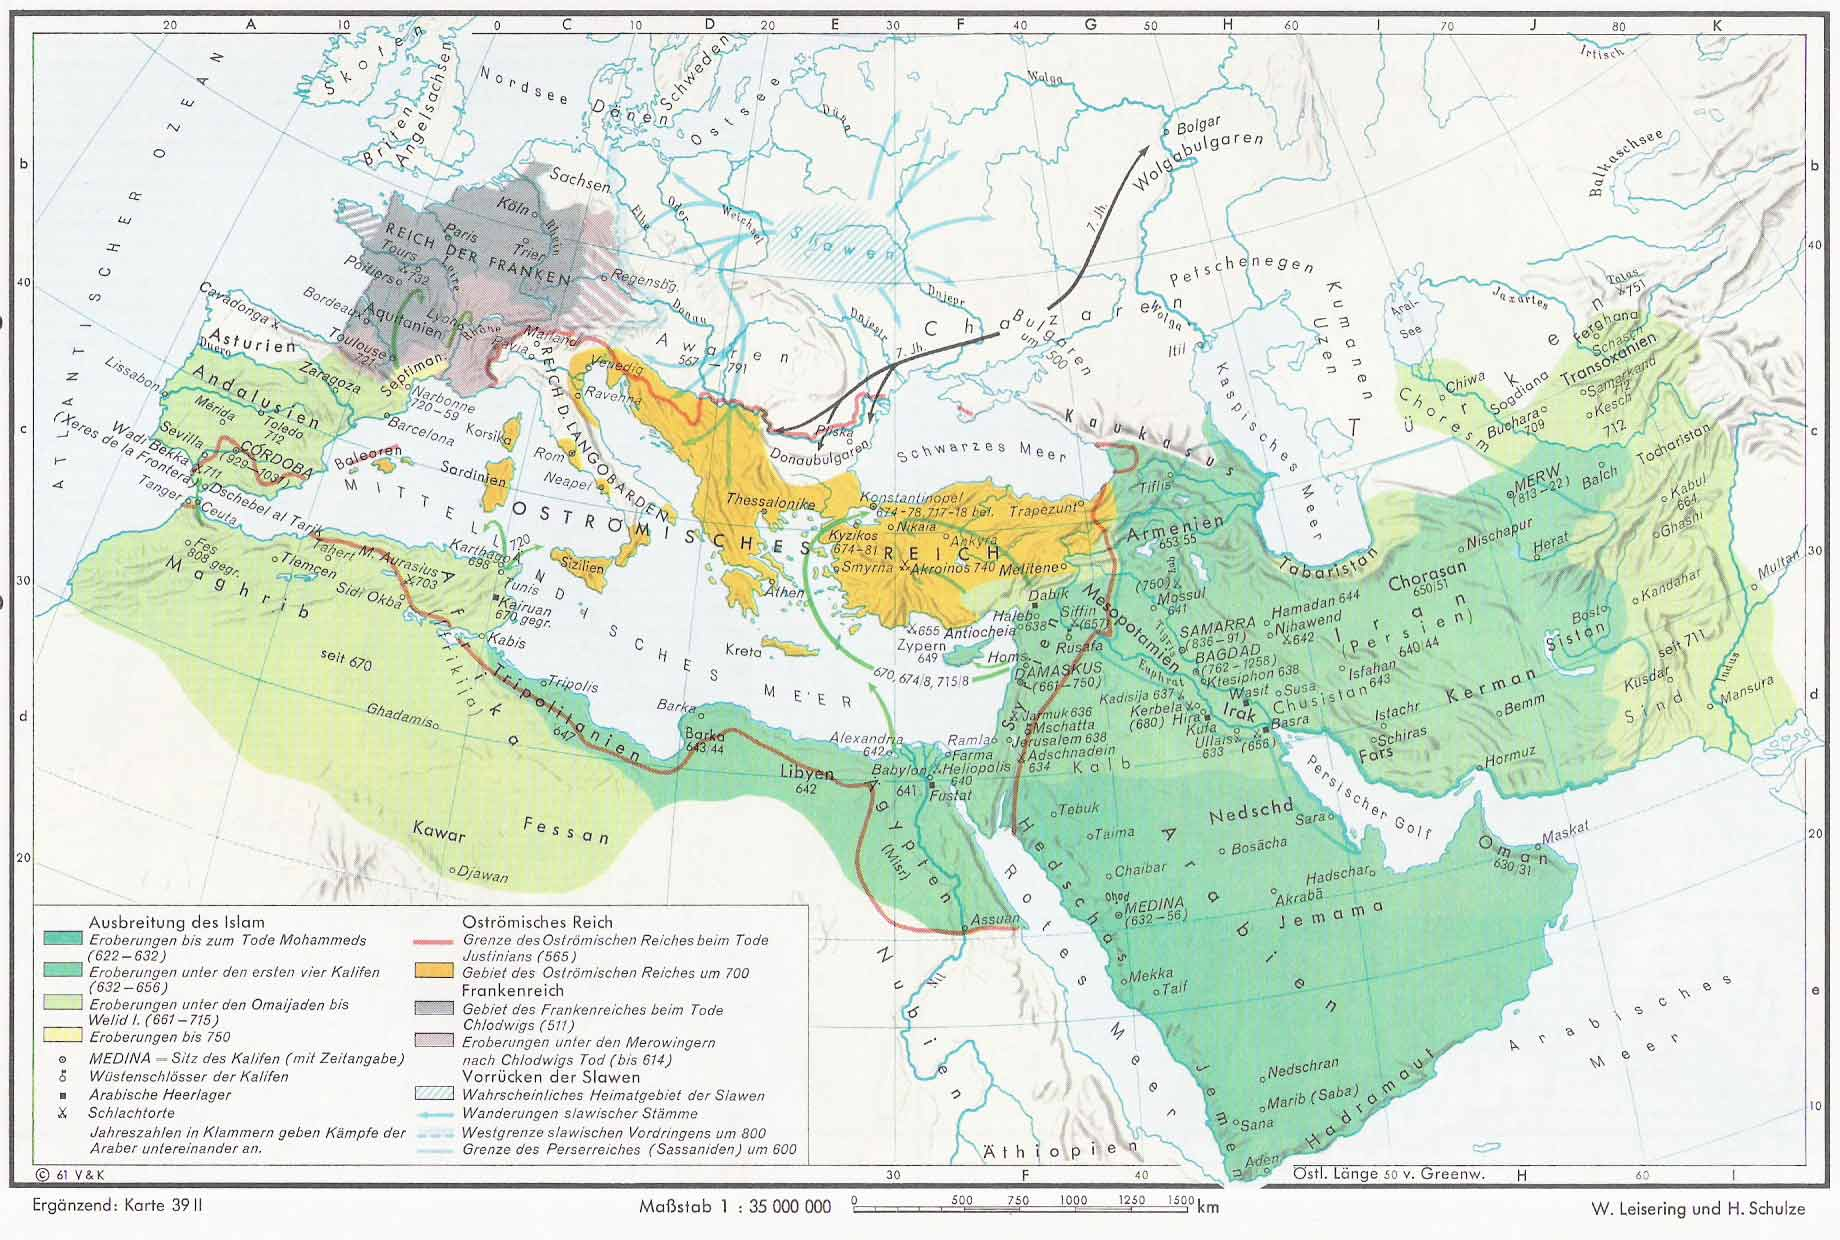 Islamic Expansion 600-750